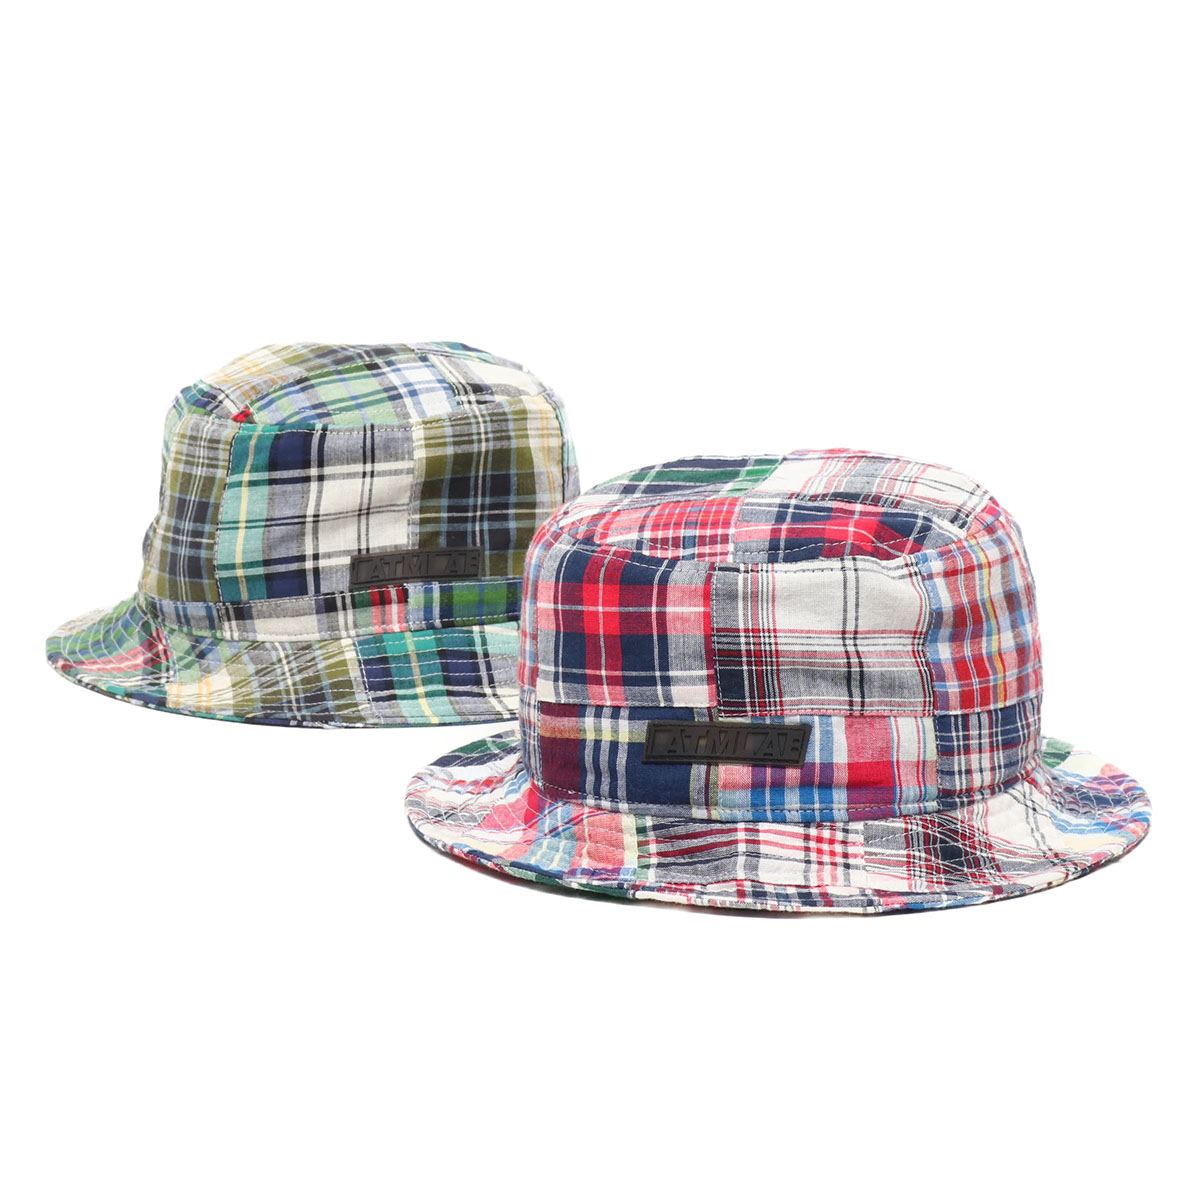 ATMOS LAB PATCHWORK BUCKET HAT